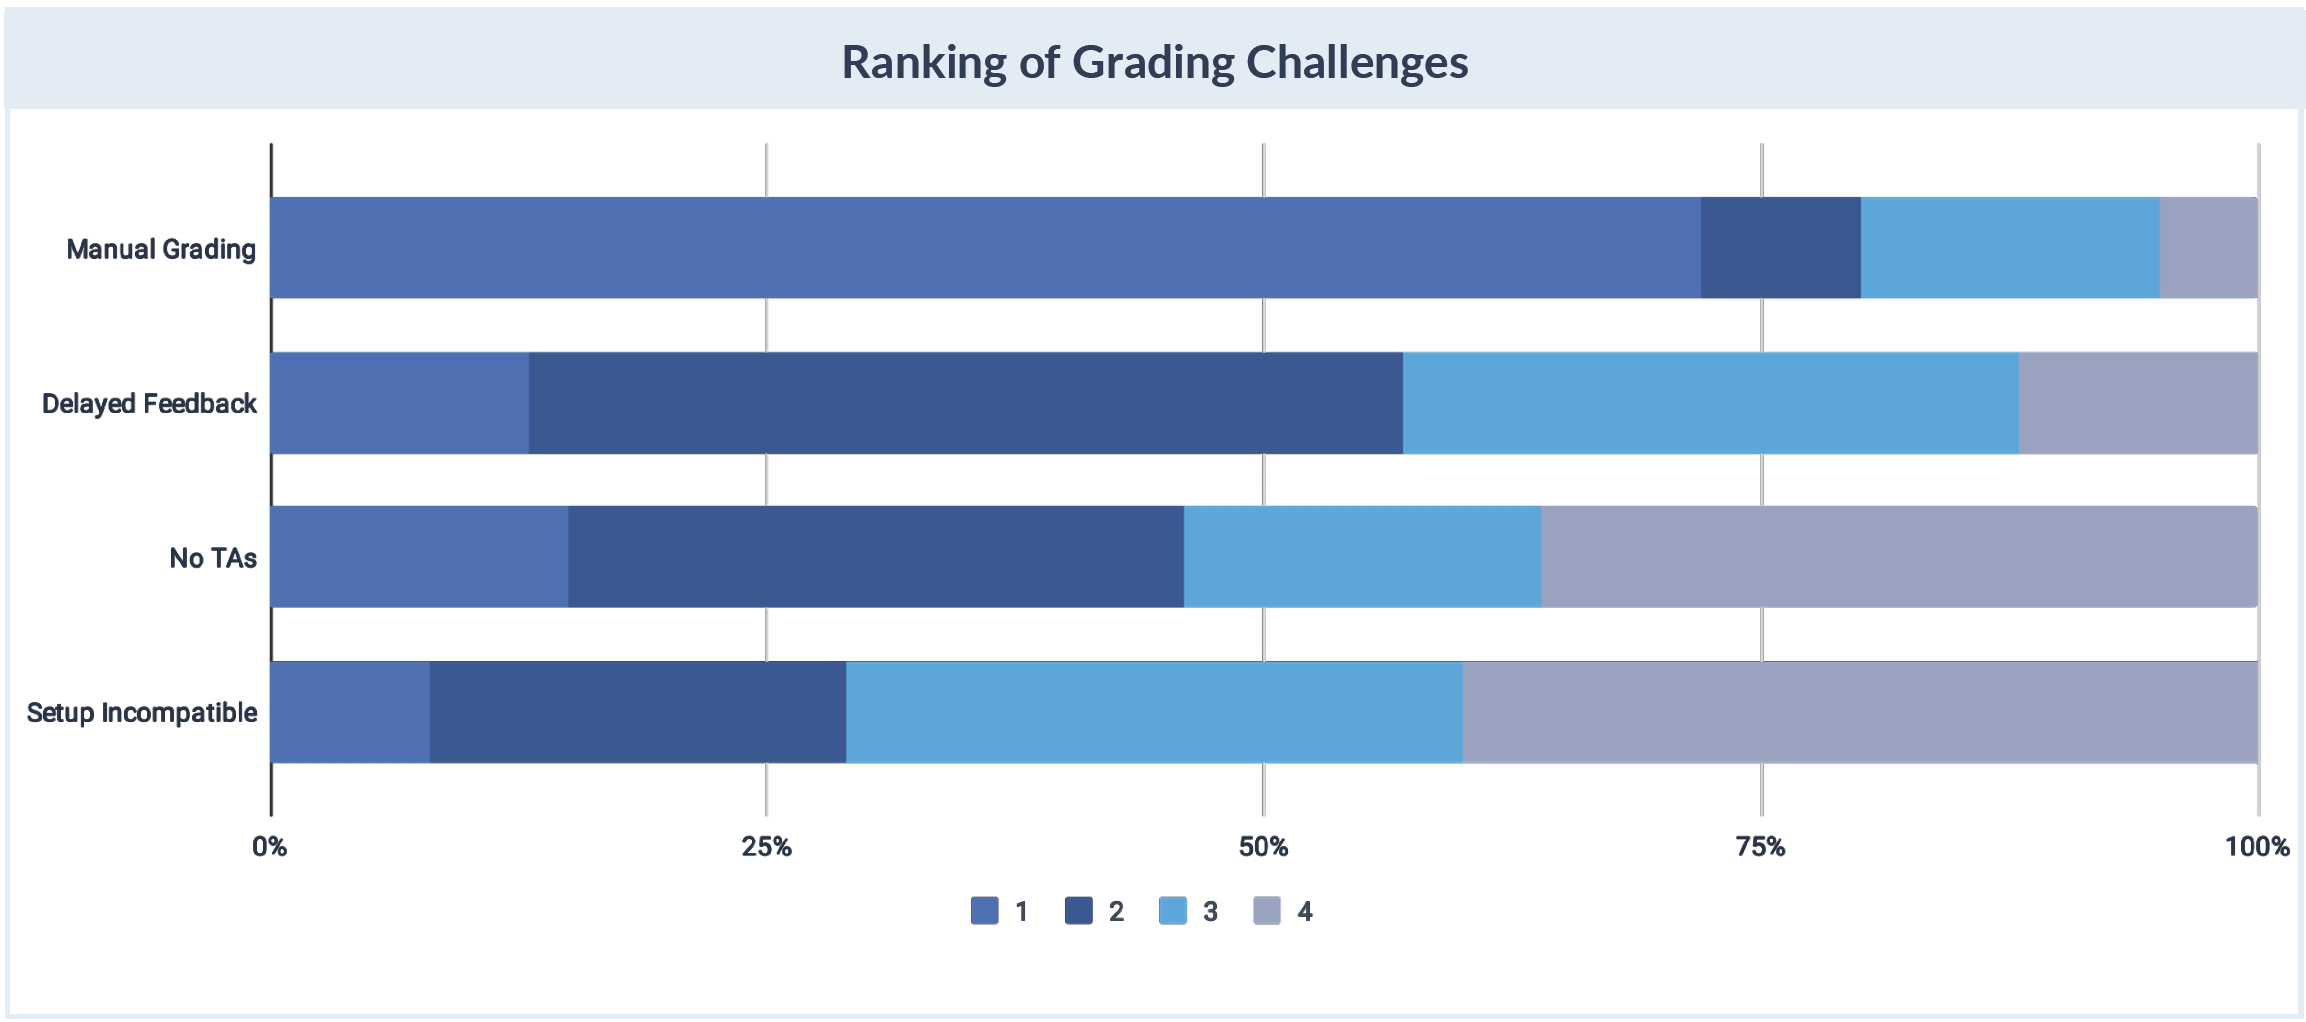 Low Student Engagement, Manual Grading Pose Key Challenges for CS Instructors